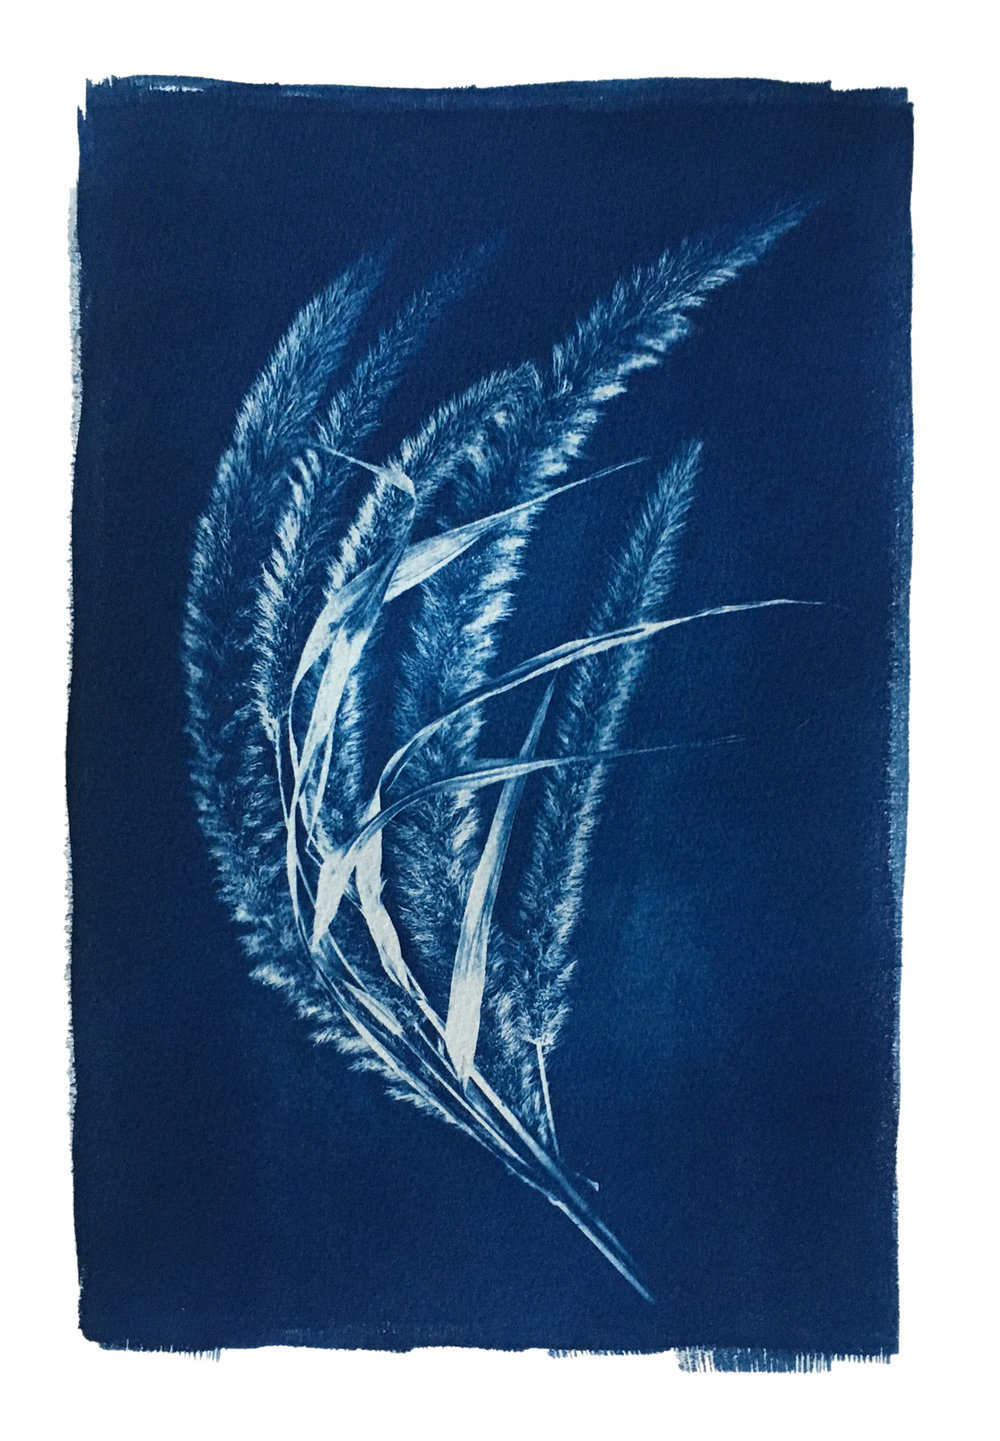 "TITLE /  Bristlegrass Fan  MEDIUM /  Cyanotype Print, Printed on 100% Cotton Paper  SIZE /  10"" x 14""  PRICE /  $375.00"